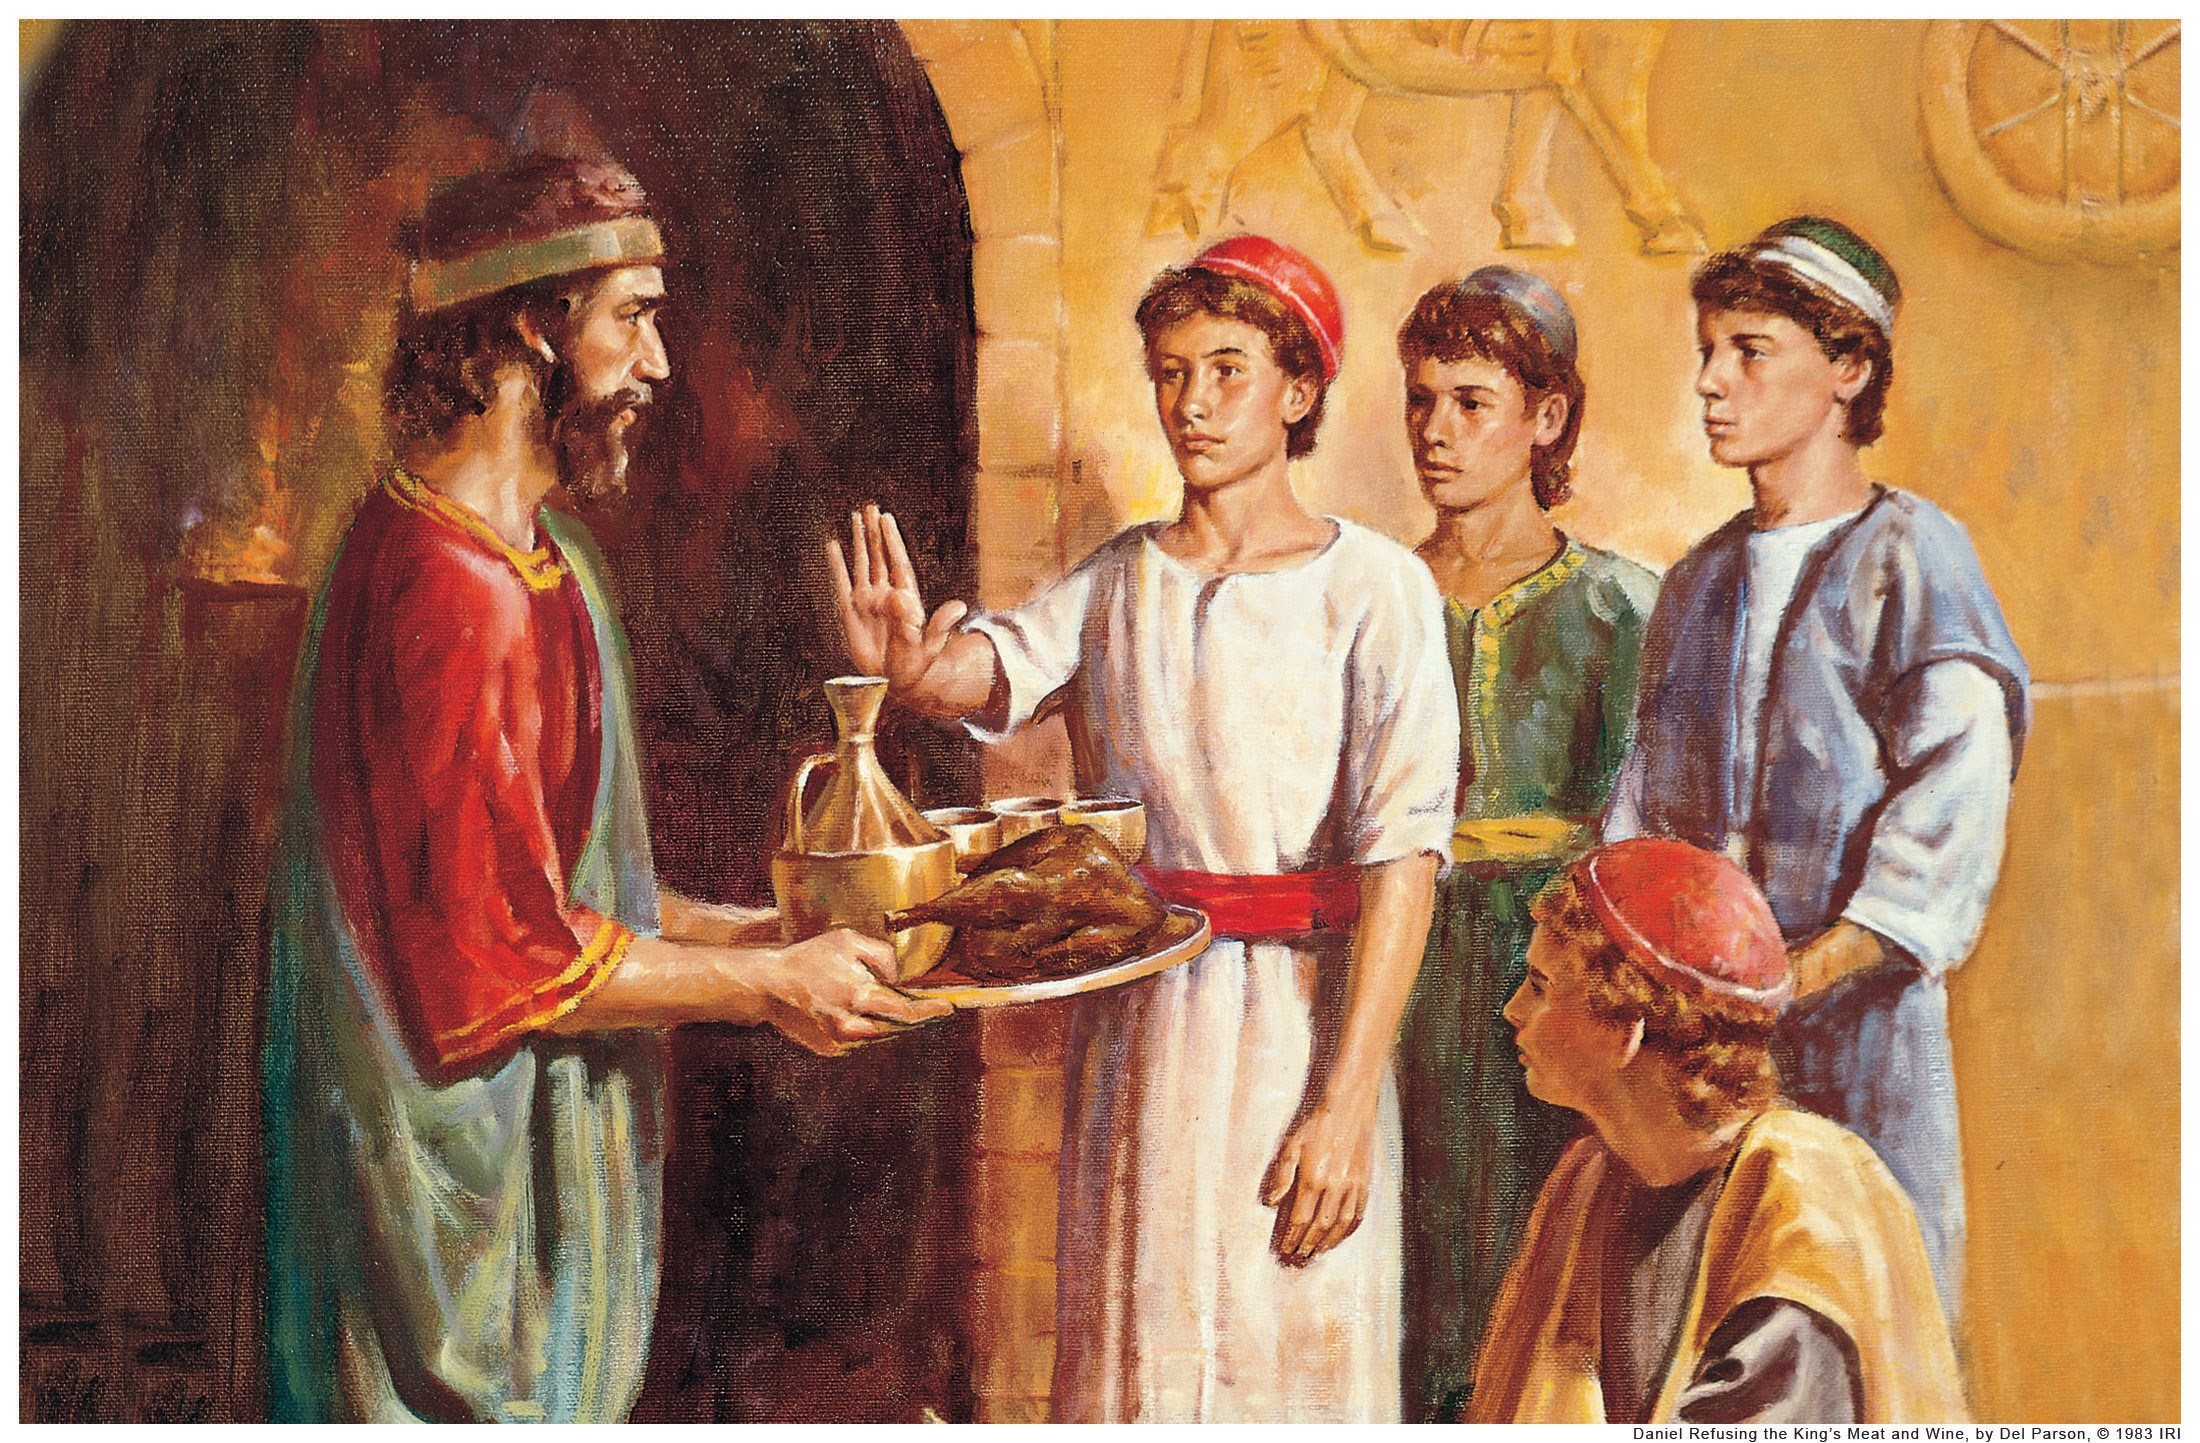 The Book of Daniel Pt 1